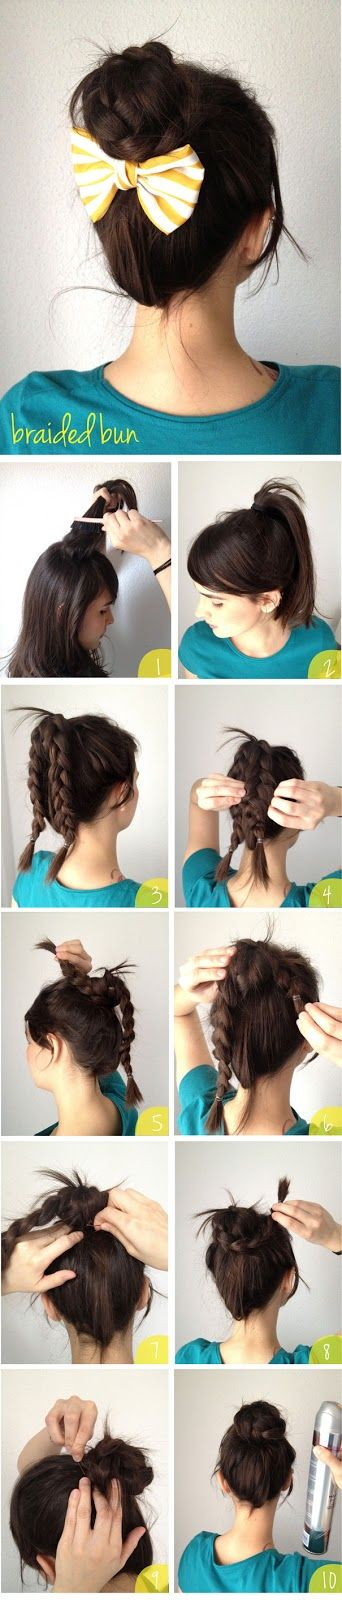 How To Make Braided Bun | hairstyles tutorial-- This could be good for Nursing clinicals, minus the whispies and the bow. :)